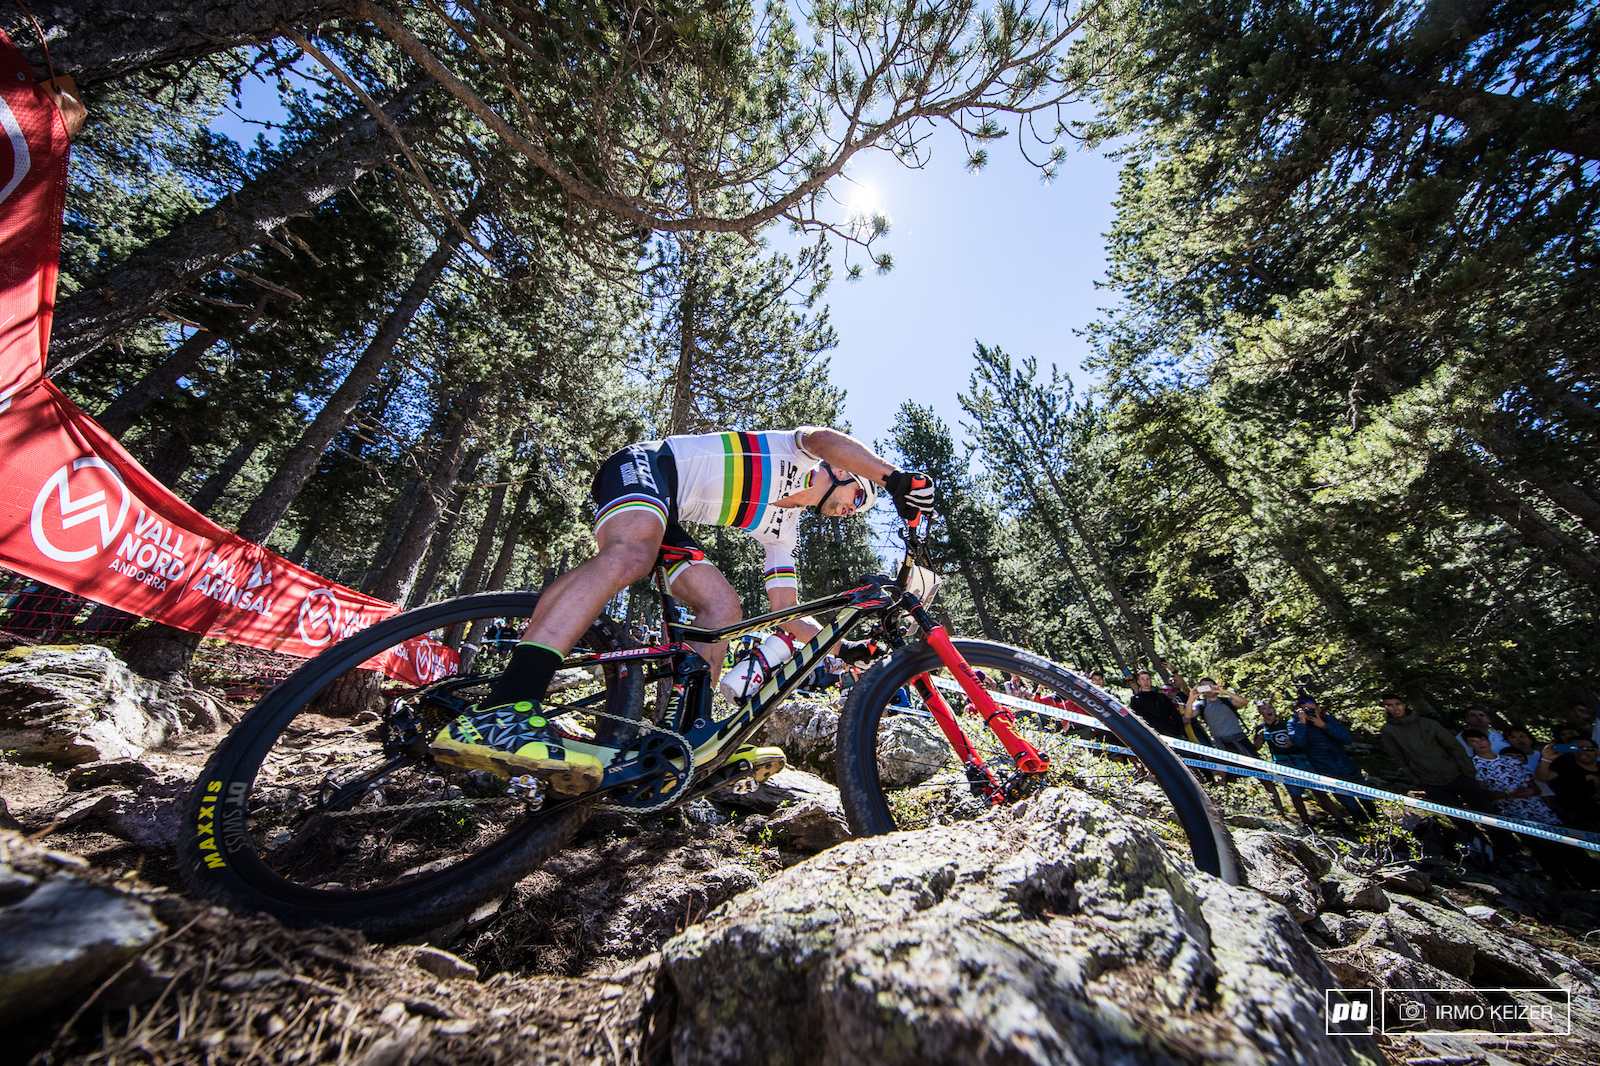 Schurter took the lead and would never look back.